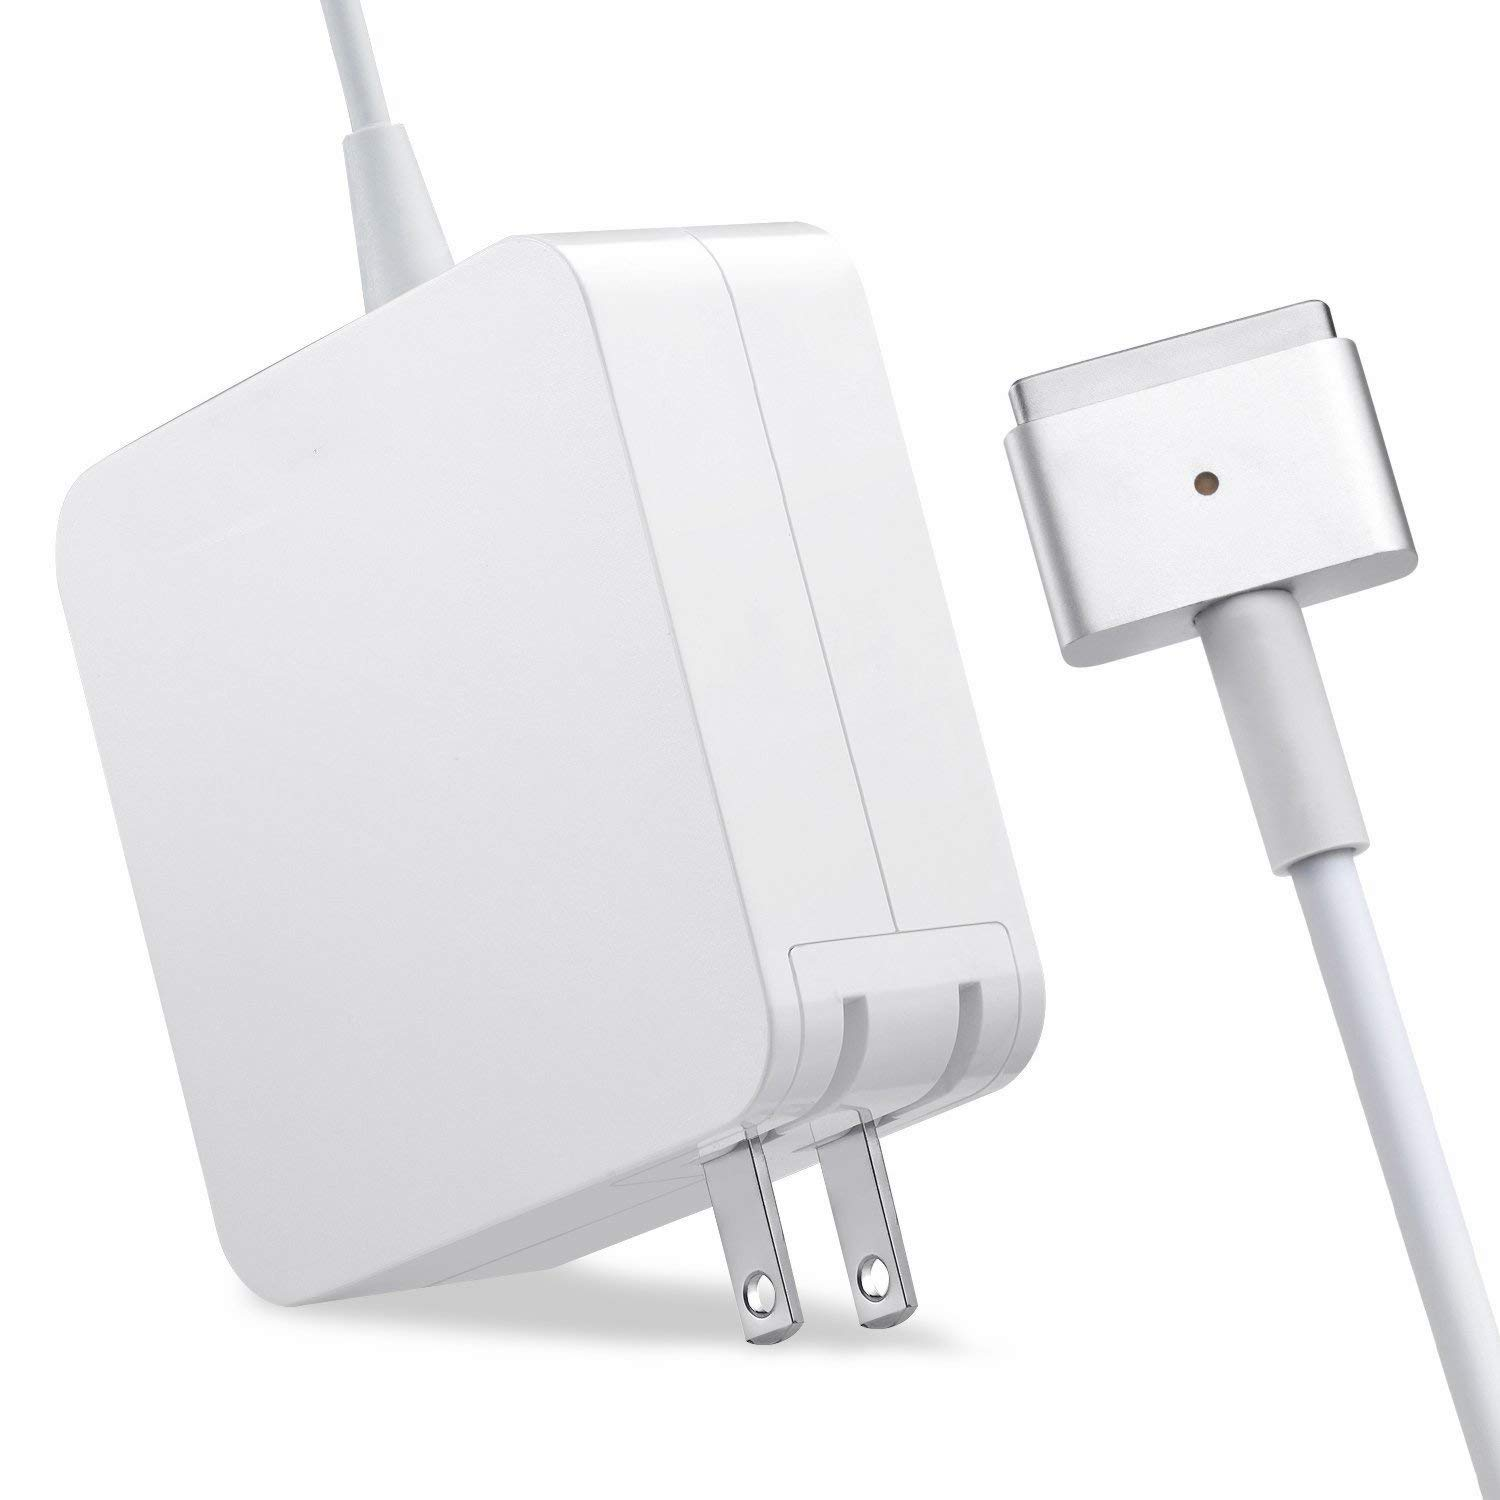 Mac Book Air Charger, AC 45W Magsafe 2 T-Tip Power Adapter Charger Replacement for MacBook Air 11/13 inch (MacBook Air After Mid 2012) by DDSUN